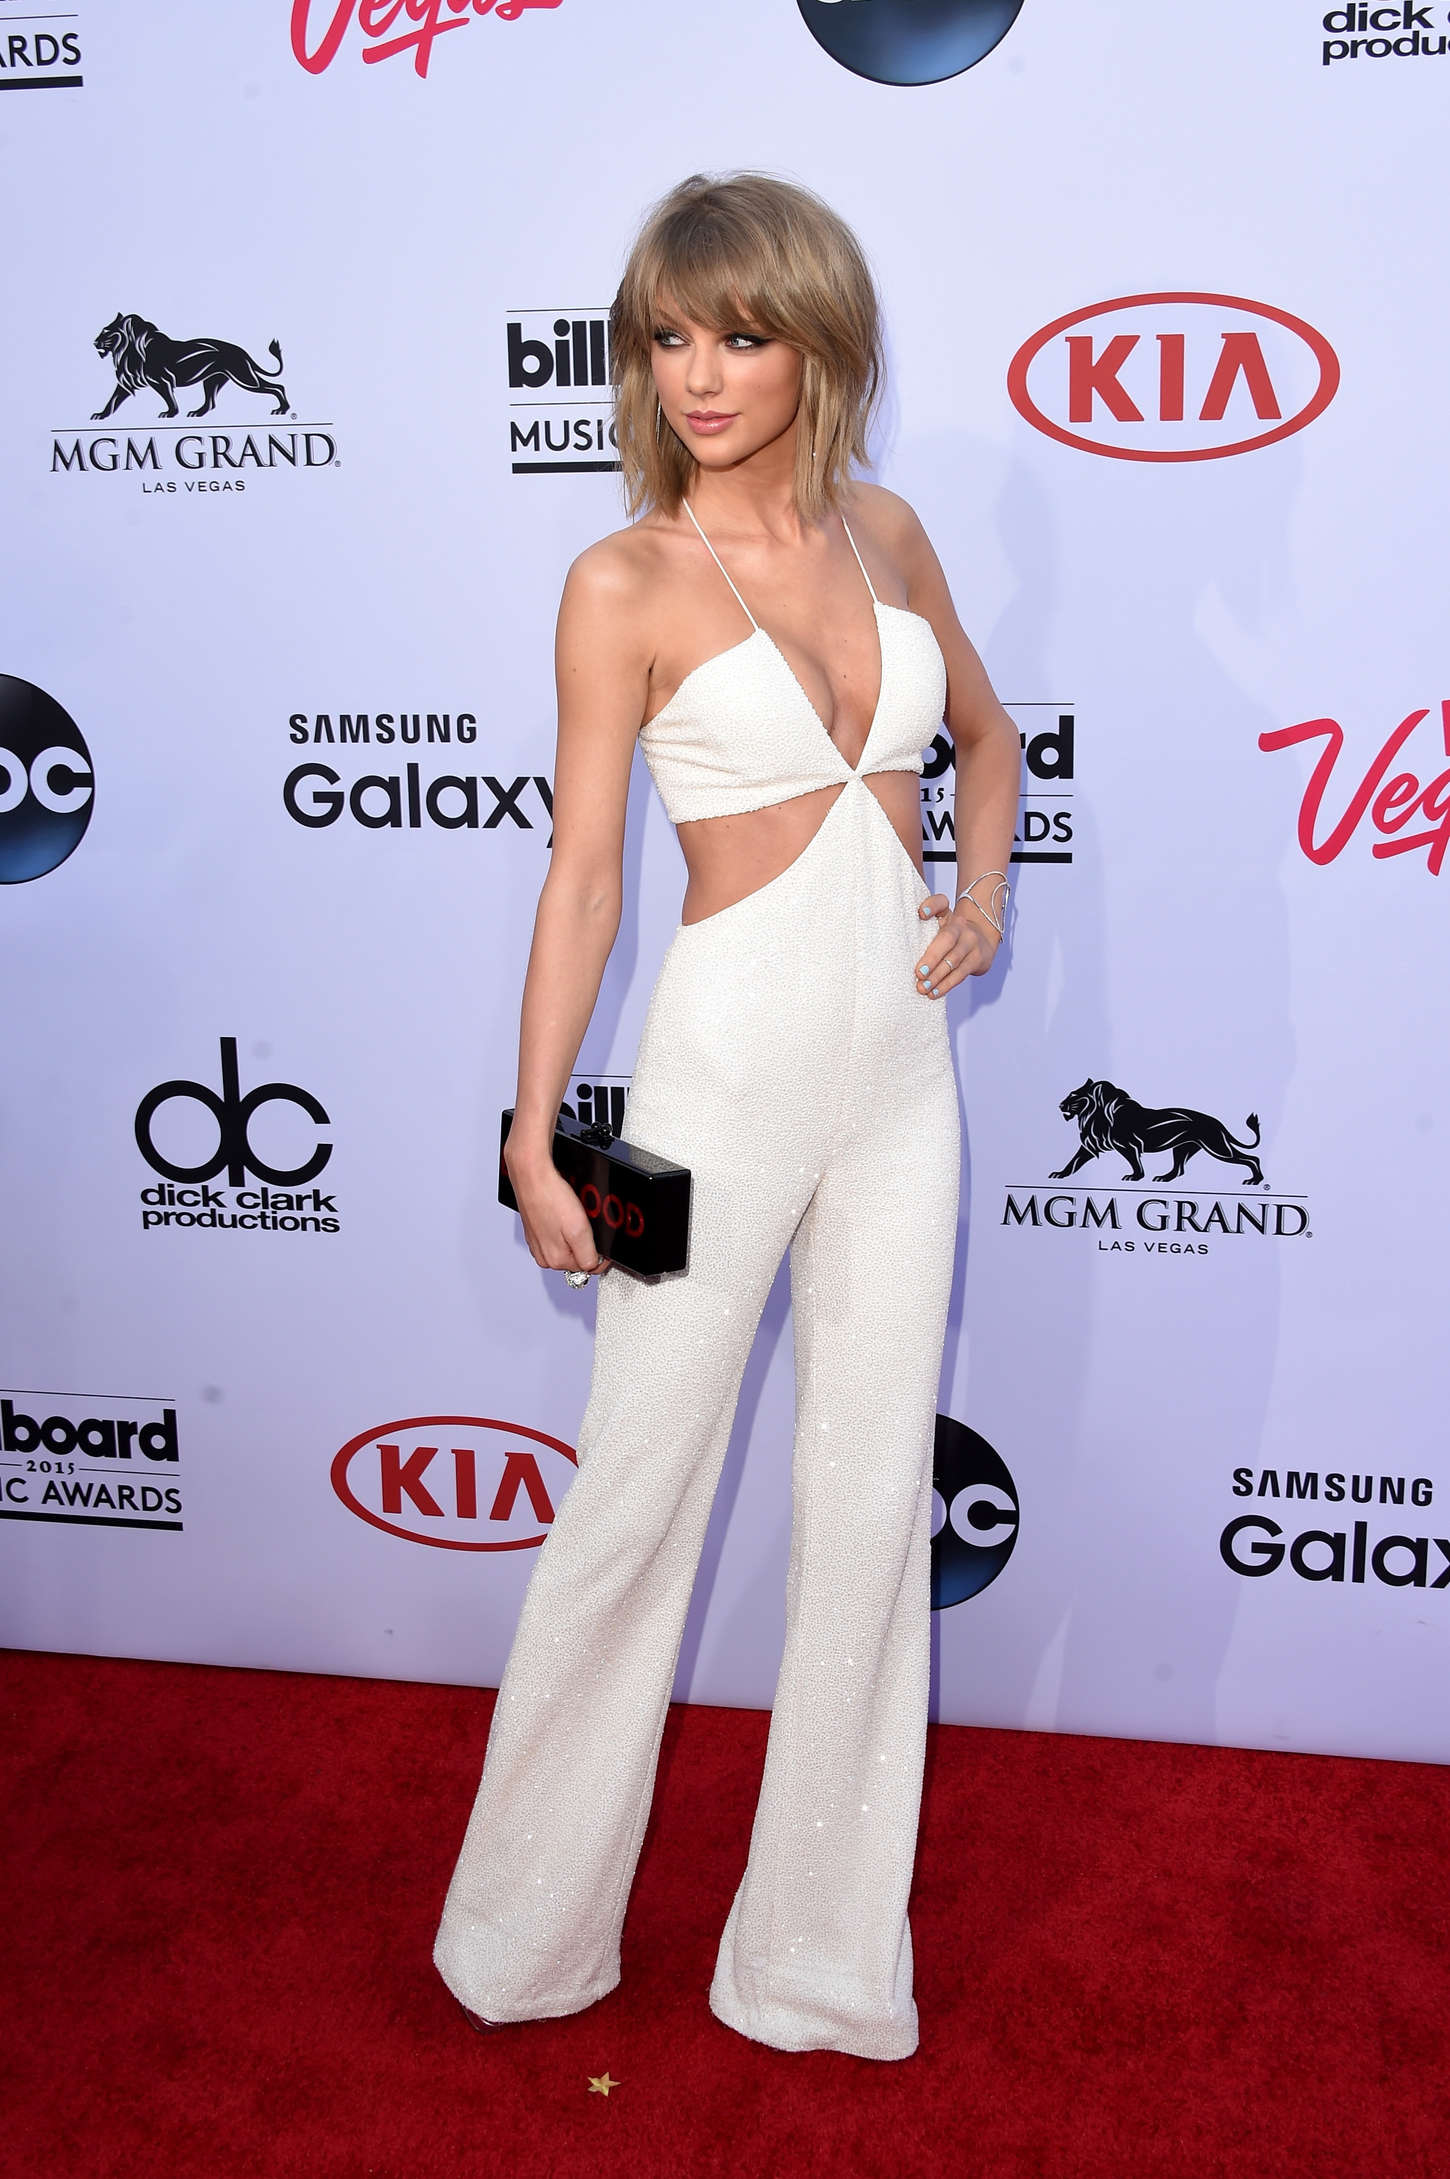 Taylor Swfit 2015 : Taylor Swift : Billboard Music Awards 2015 -09